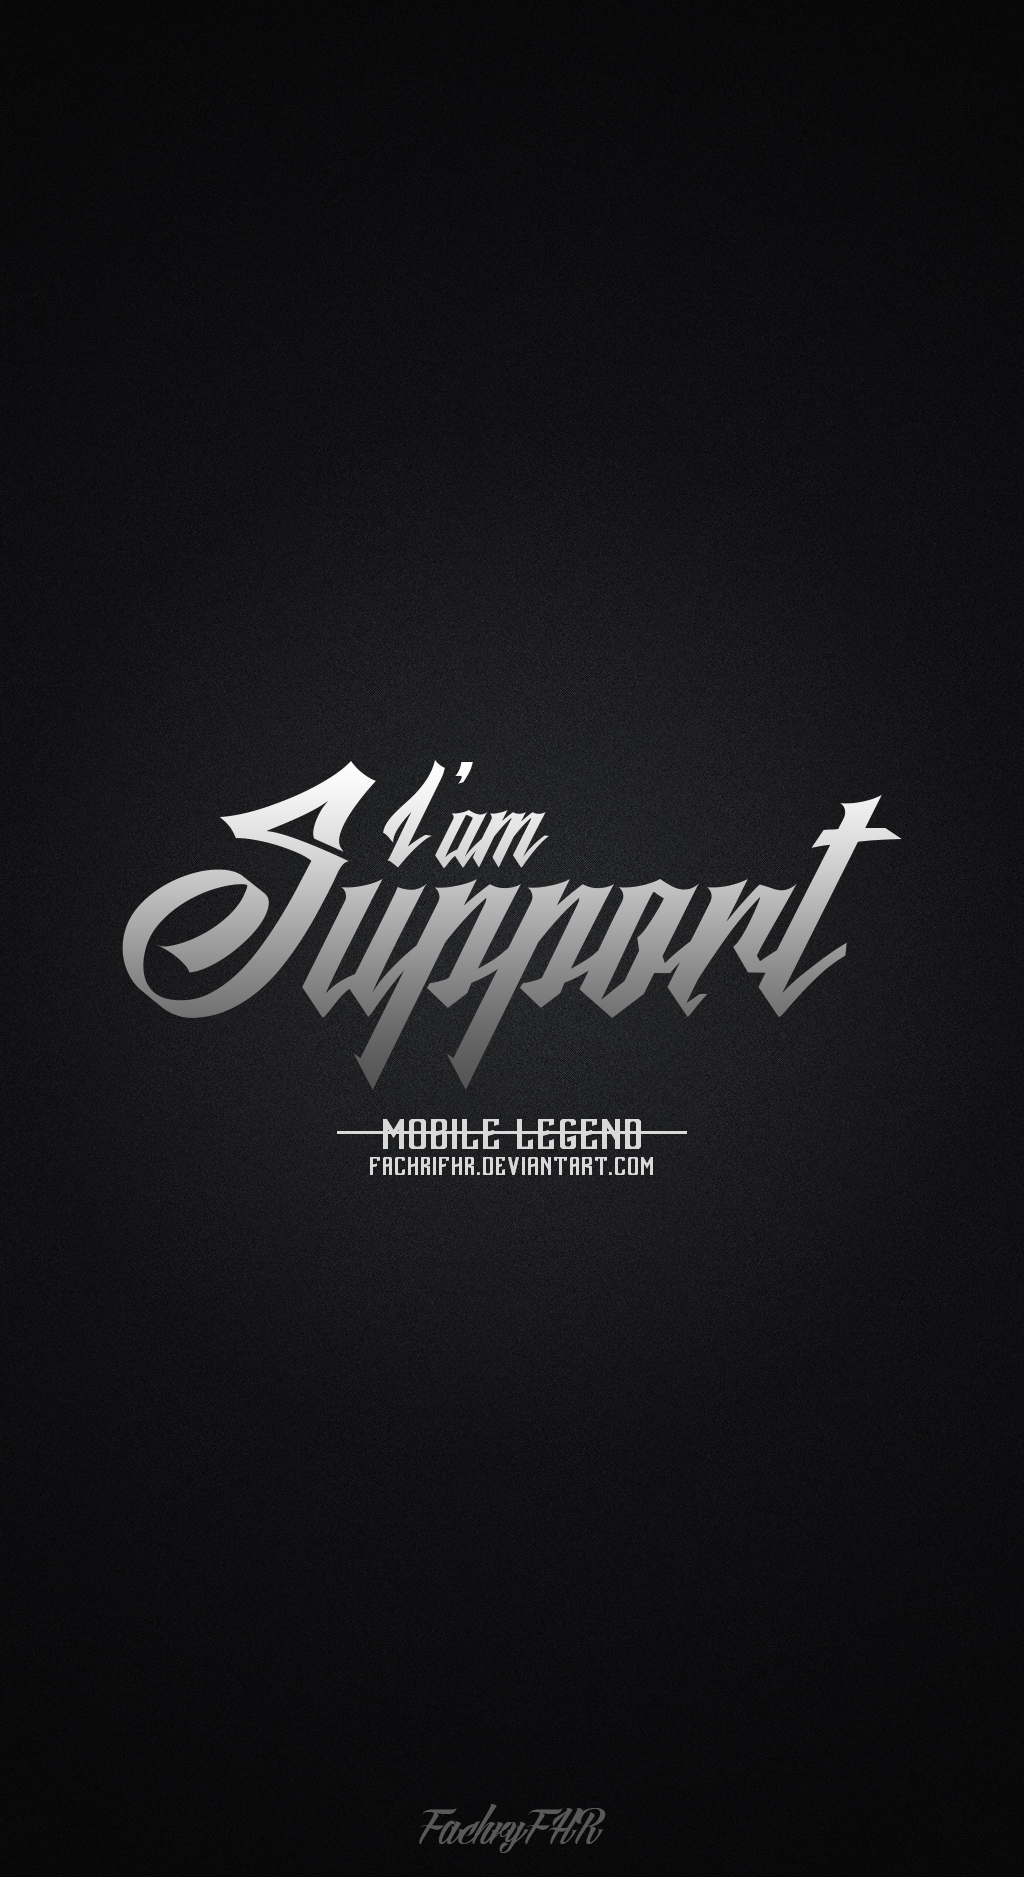 Wallpaper Phone Role Support Mobile Legend By FachriFHR On